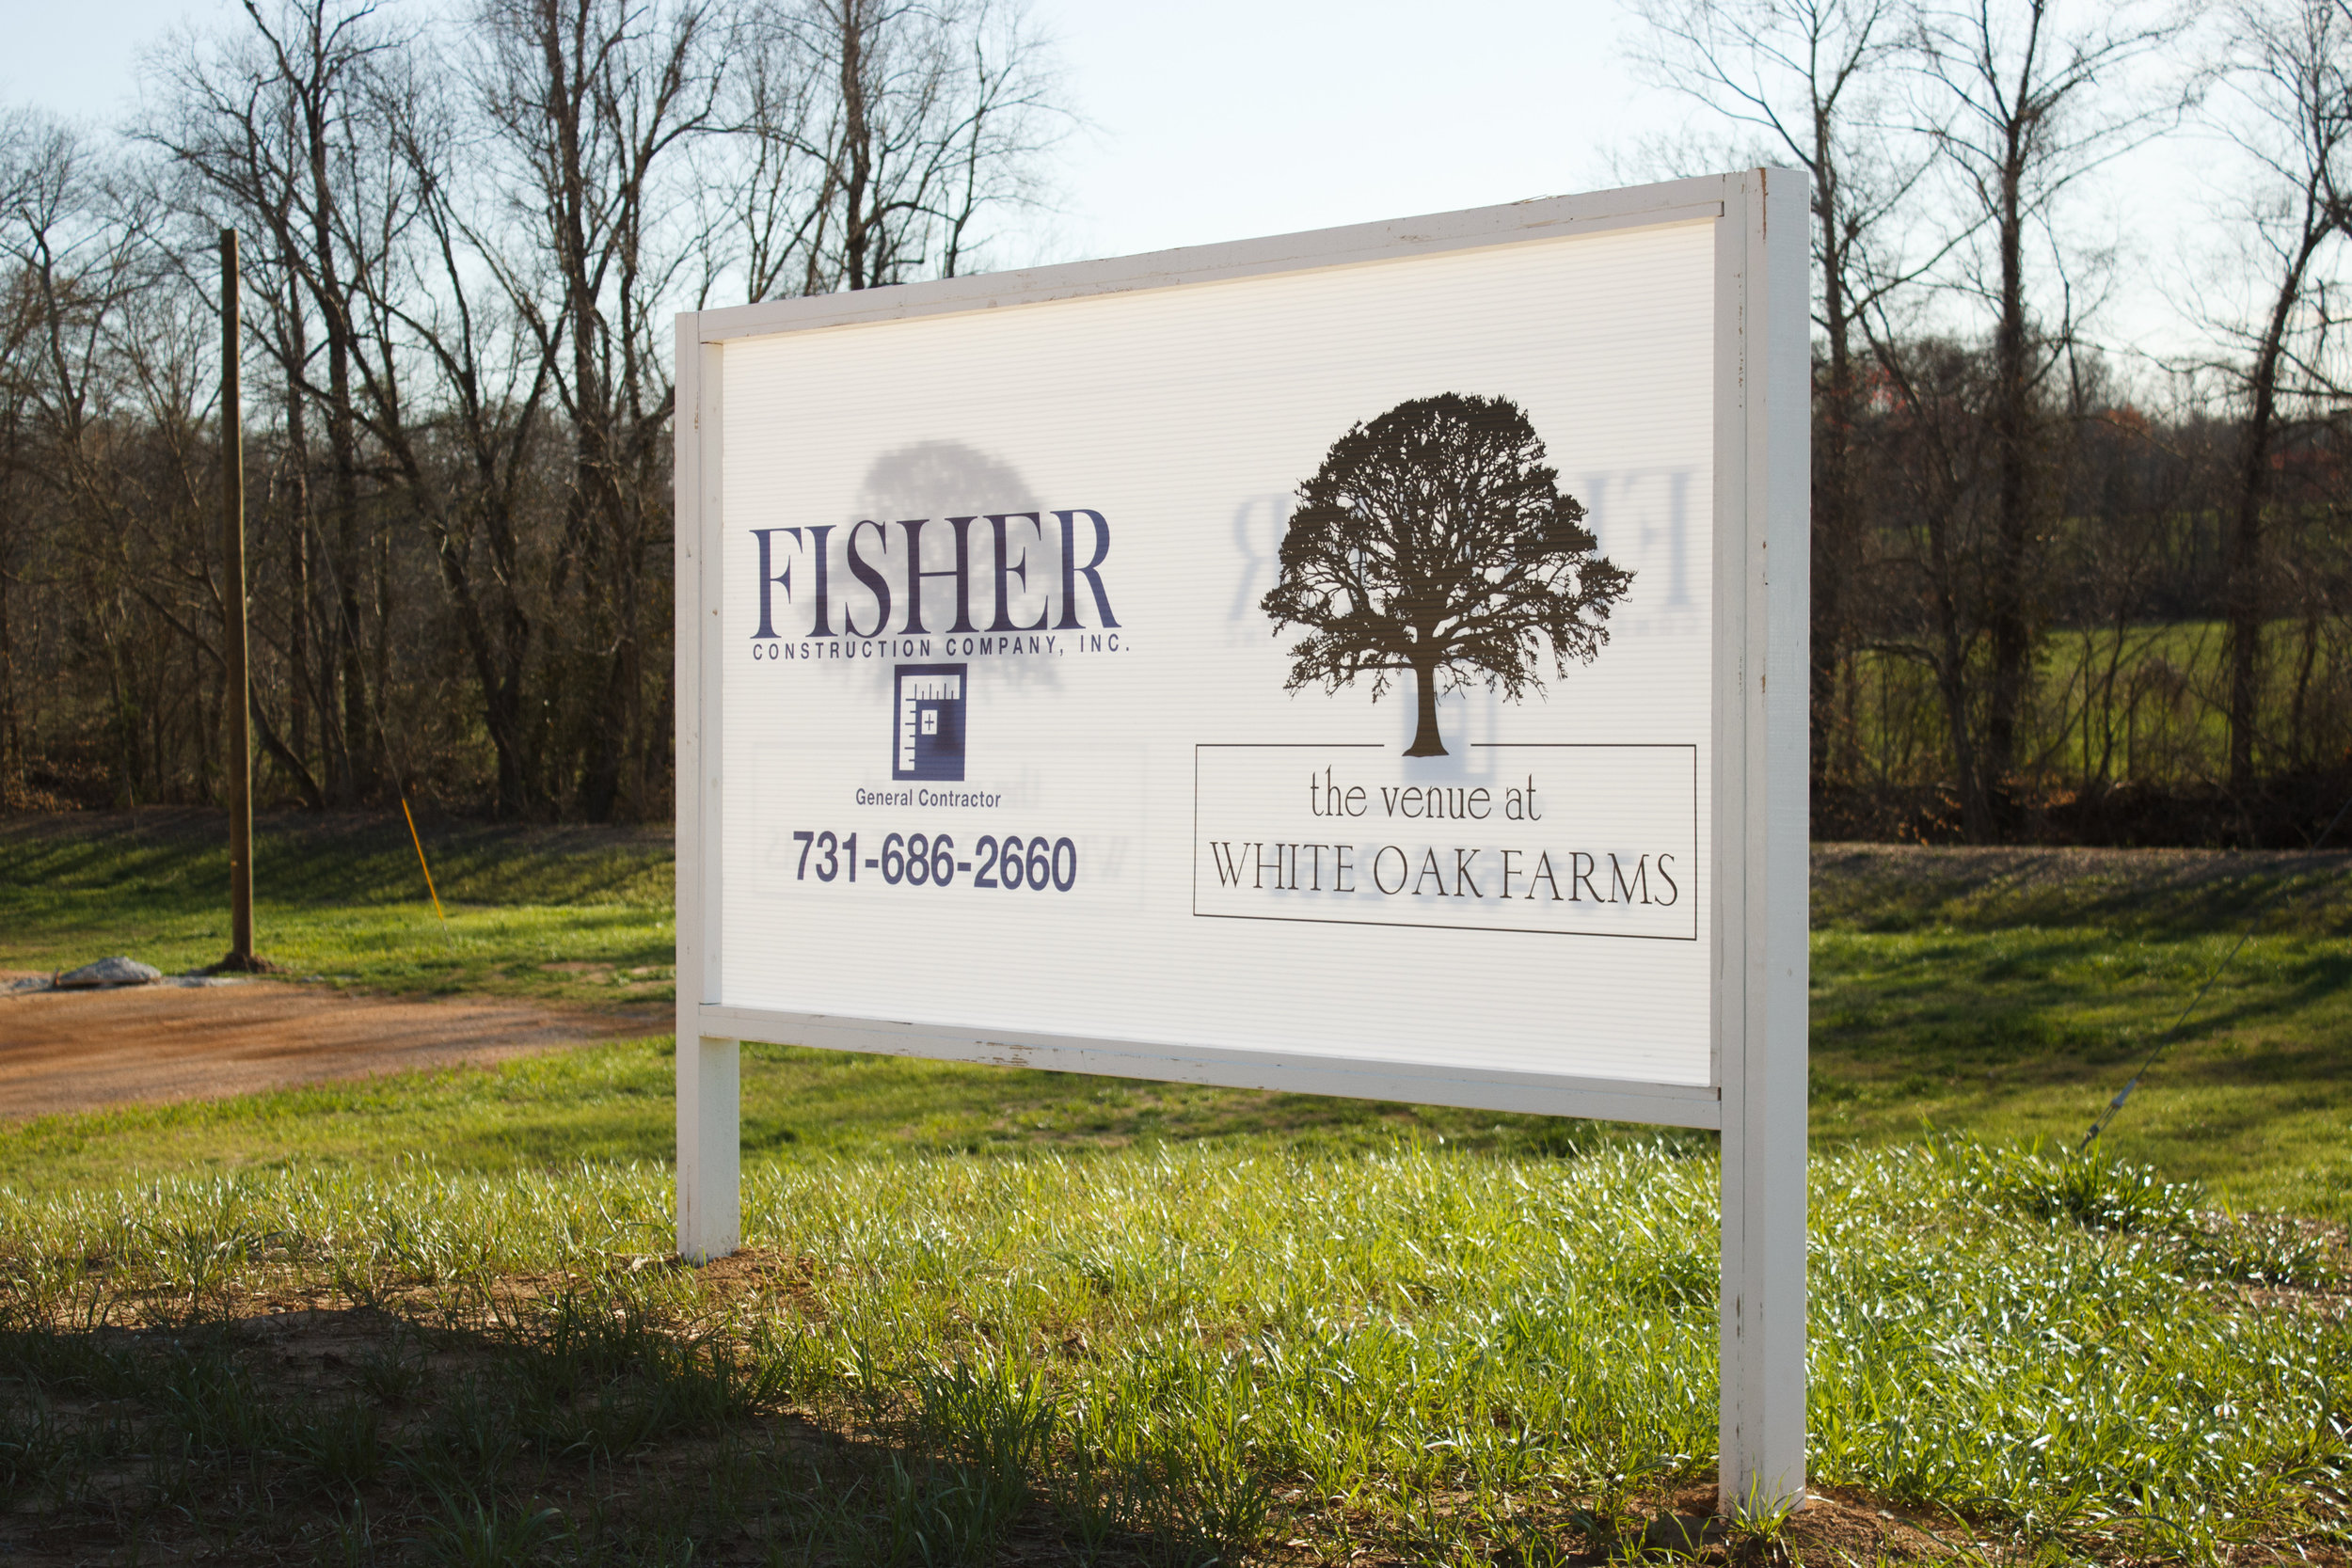 Official construction sign for The Venue at White Oak Farms and Fisher Construction